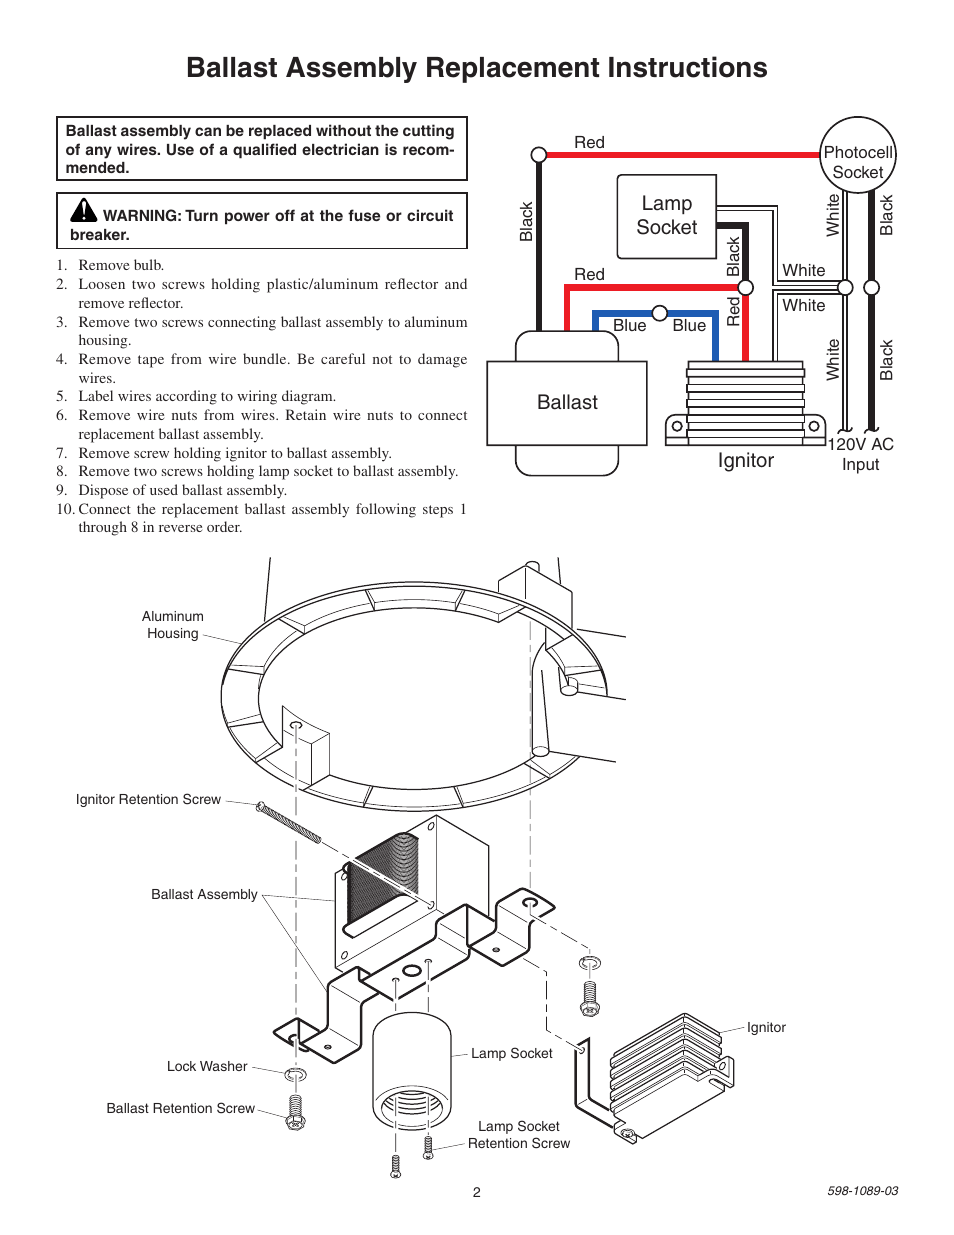 medium resolution of ballast assembly replacement instructions lamp socket ballast high pressure sodium lamp wiring diagram